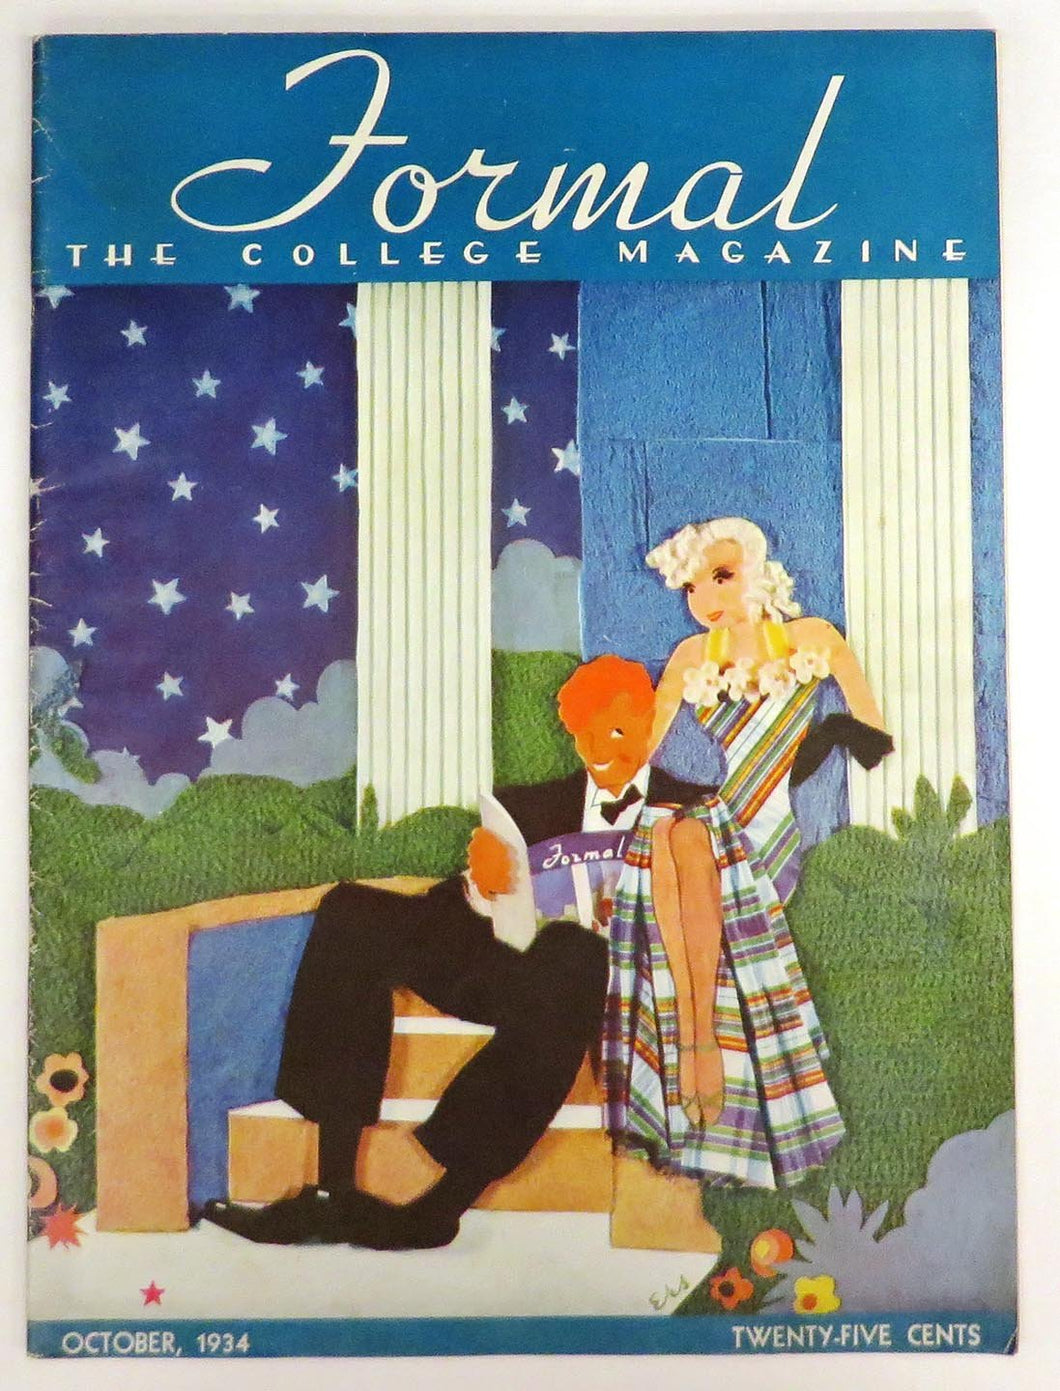 Journal: The College Magazine, October 1934